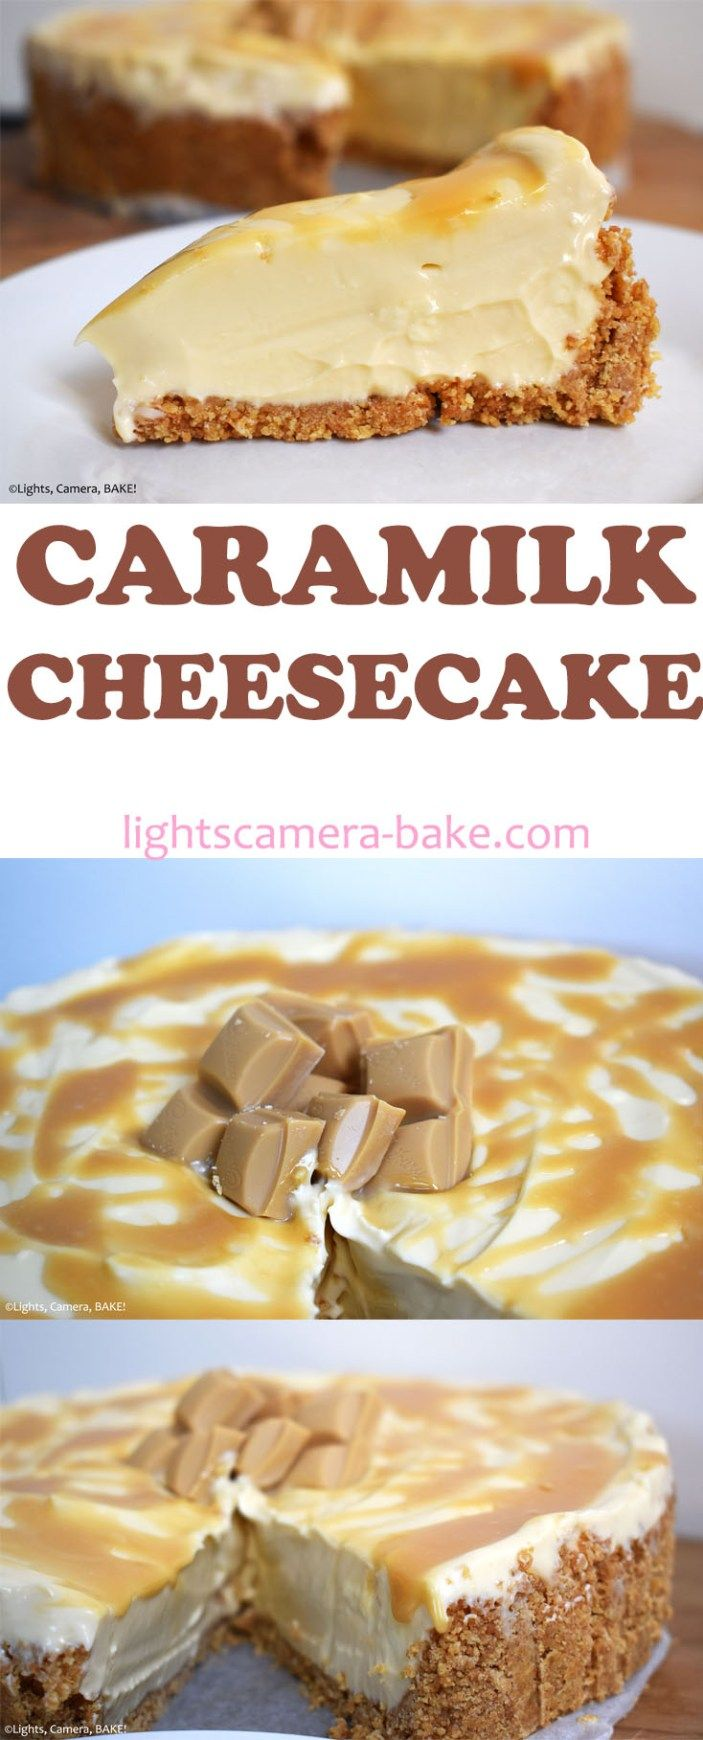 Caramilk Cheesecake - Lights, Camera, BAKE! | Addictive Baking, Desserts & Sweet Treat Recipes